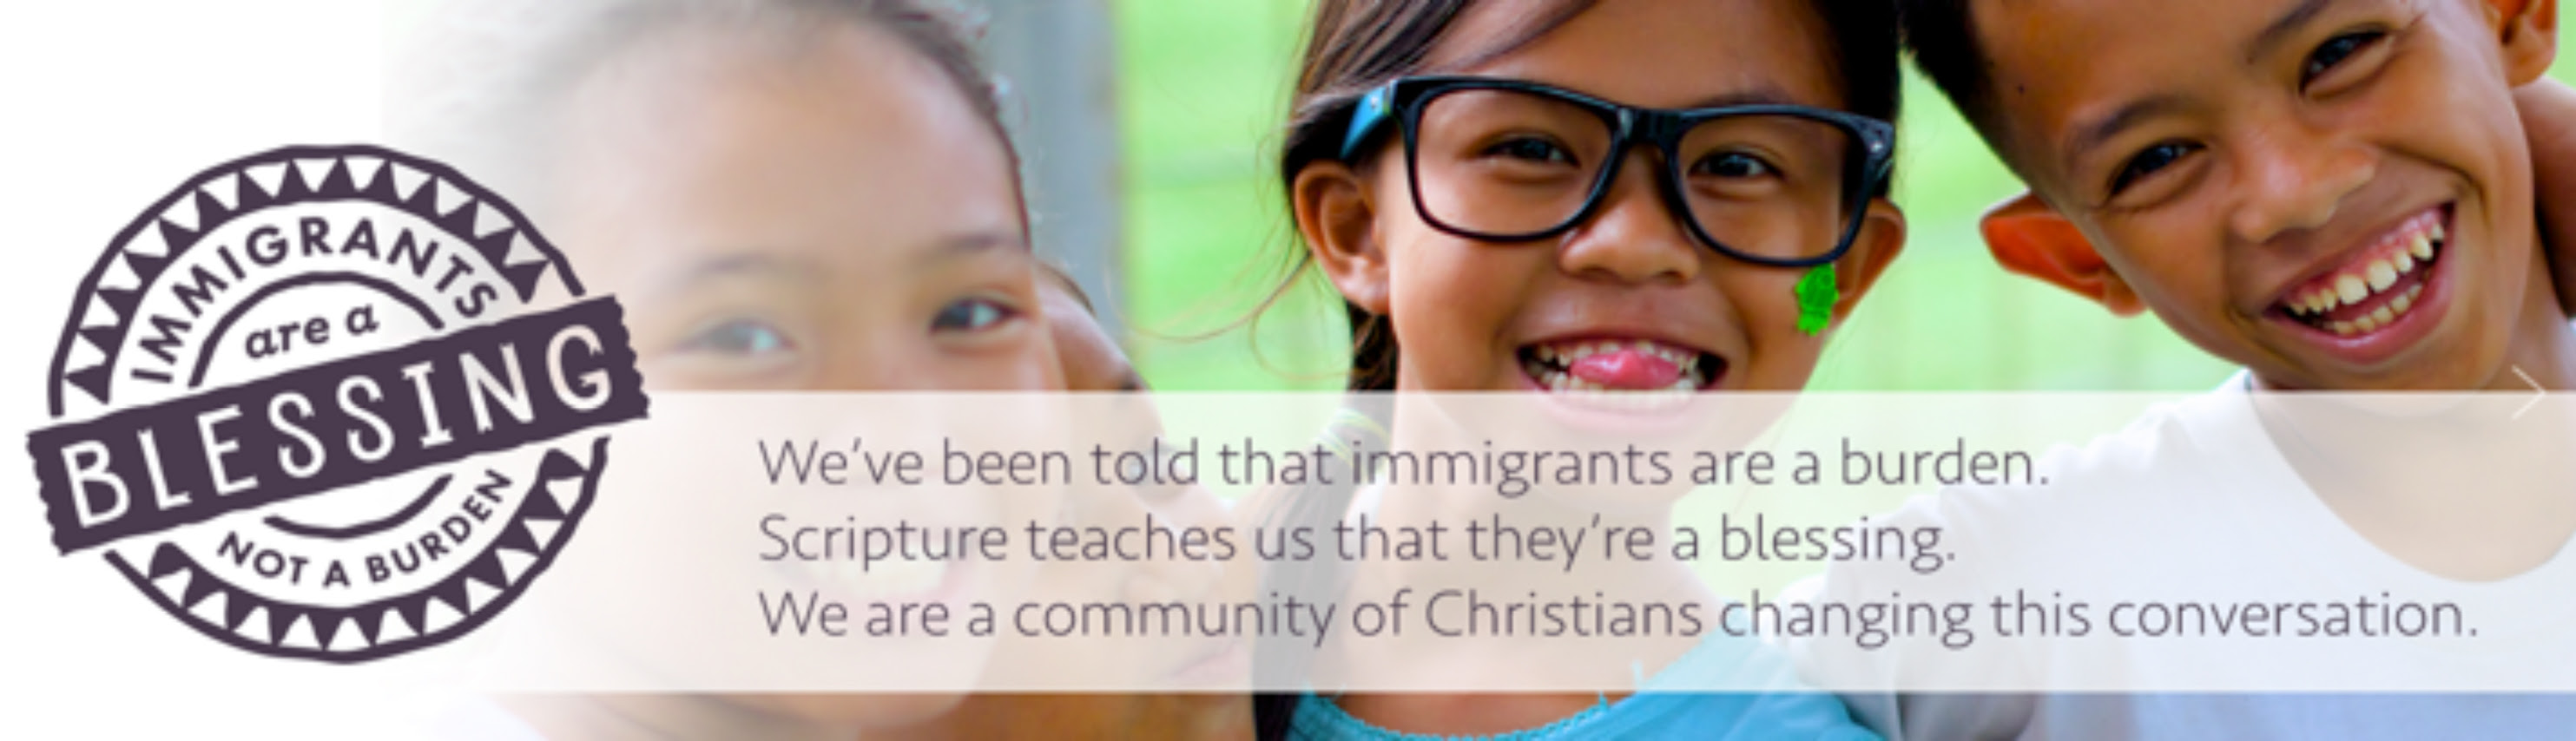 Launch Of Immigrants Are A Blessing Not A Burden Campaign